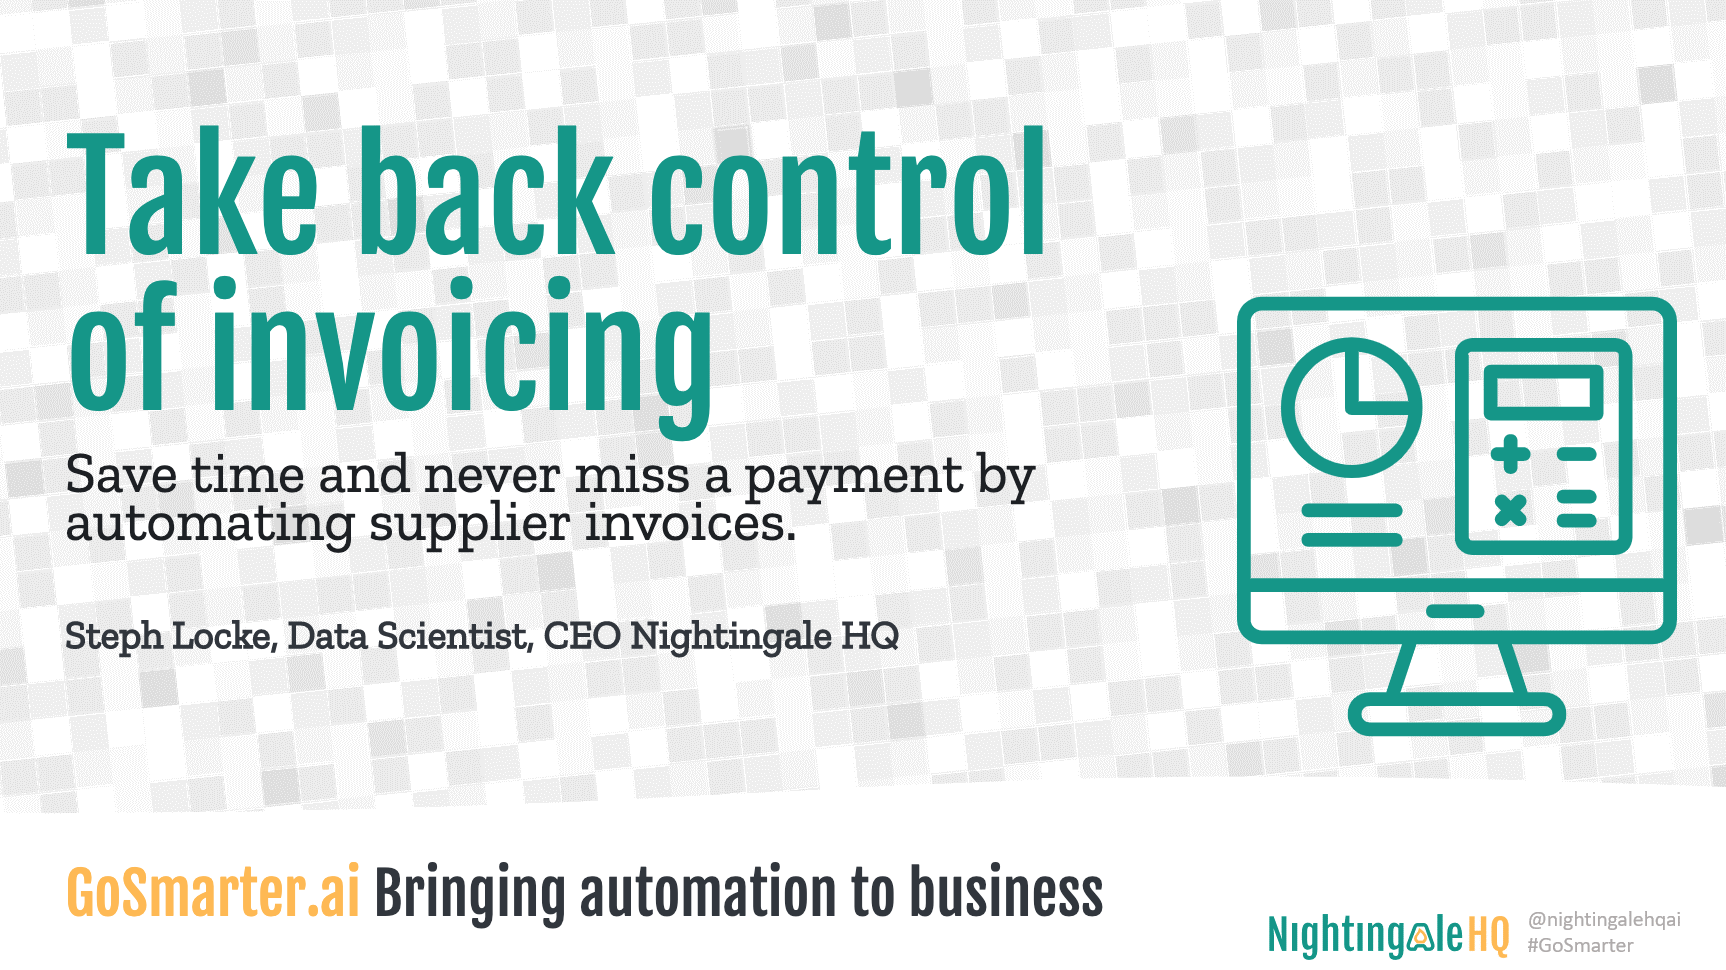 Take back control of Processing Invoicing by Automating. (GoSmarter.ai)